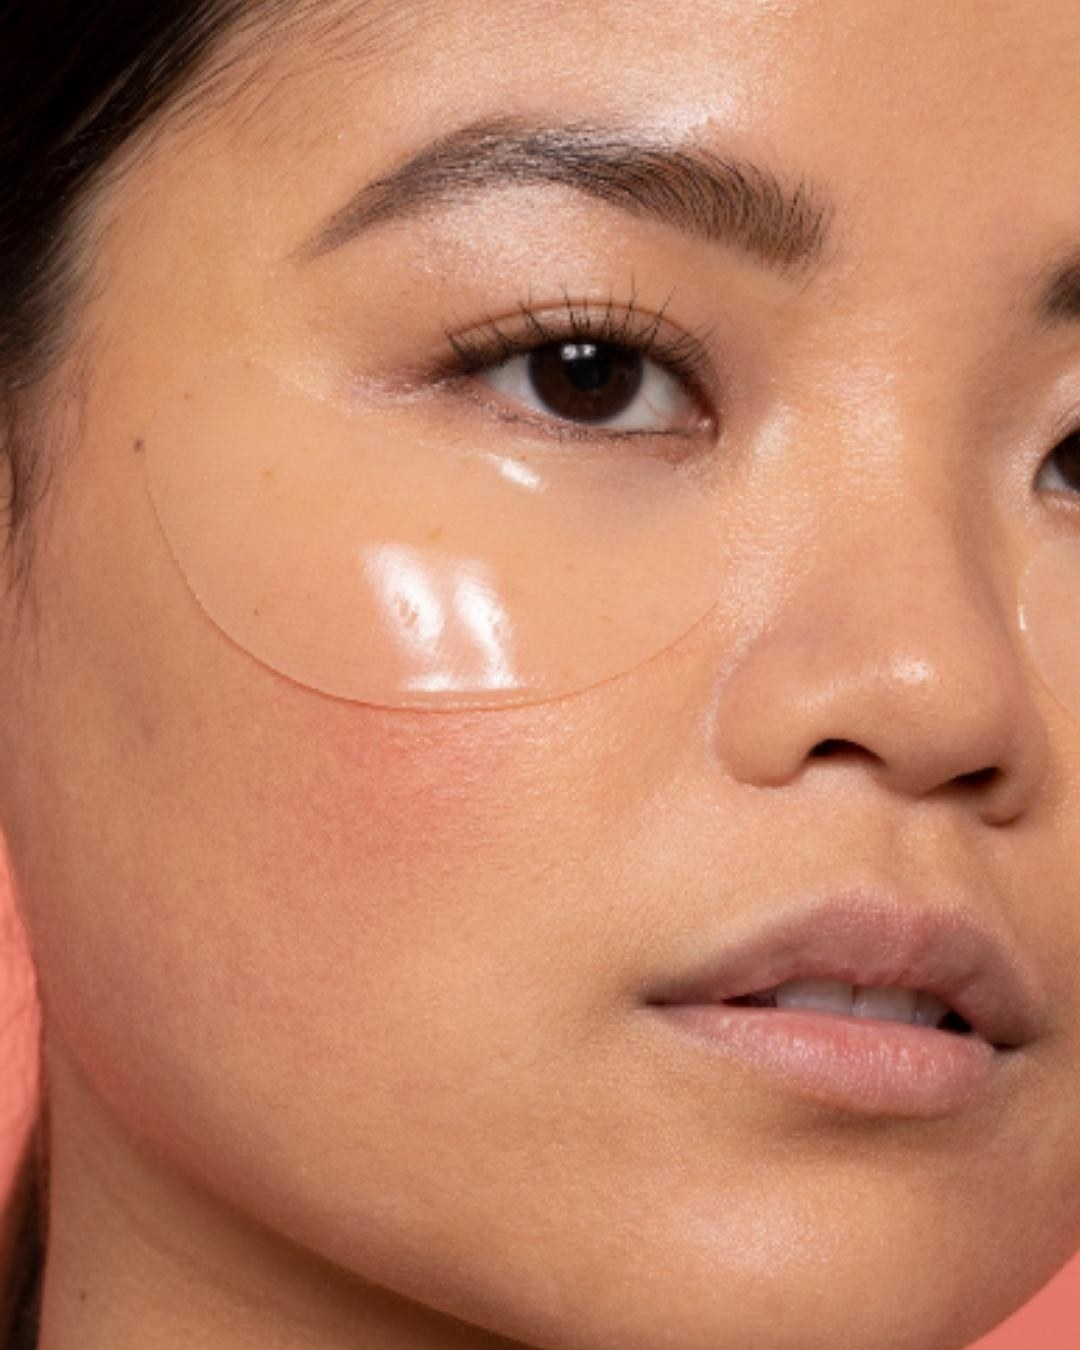 A close up of one of the hydrogel eye masks on a person's face